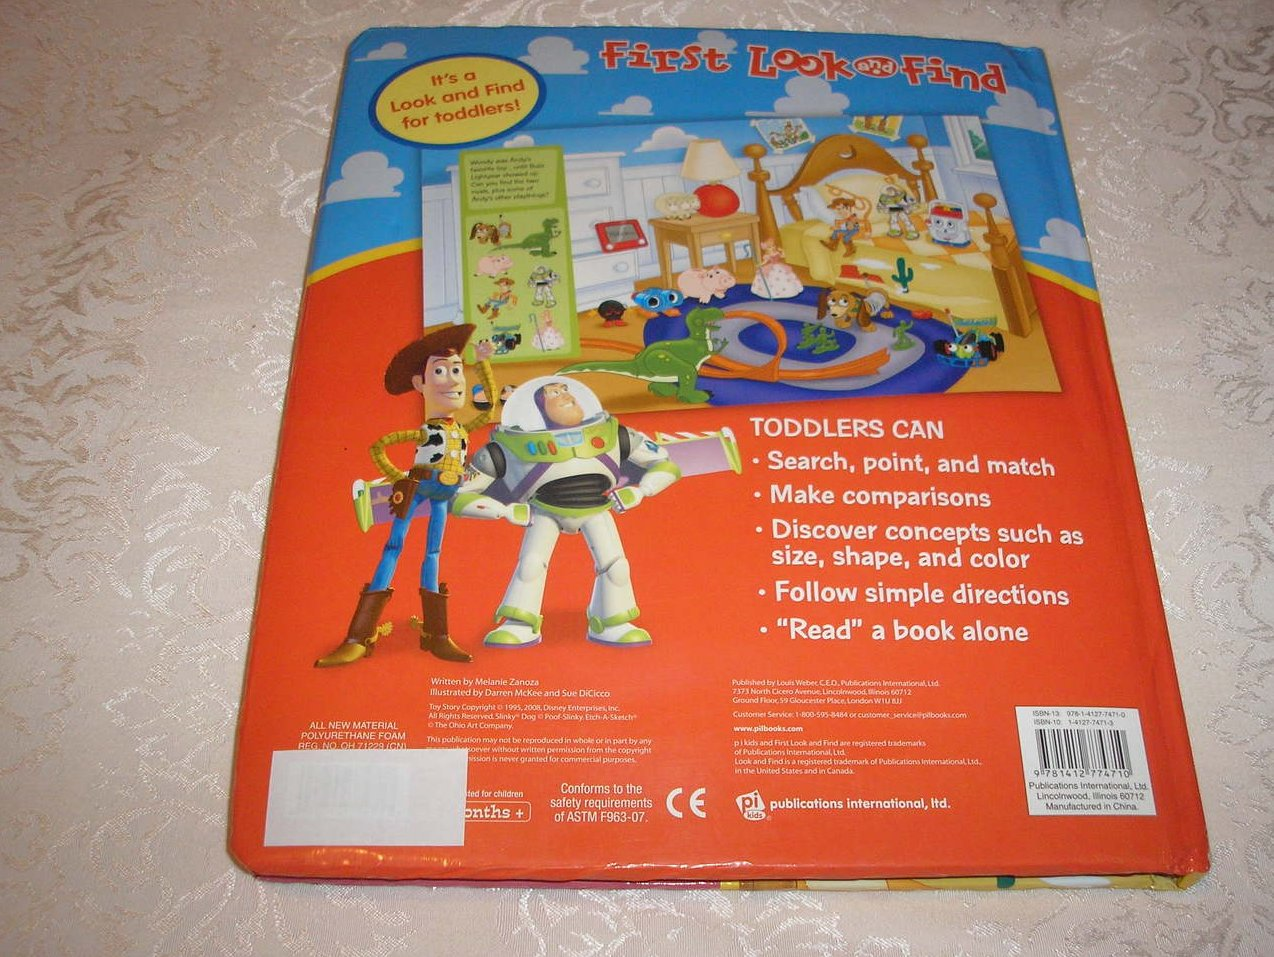 Image 4 of Disney Pixar Toy Story Look and Find padded board book